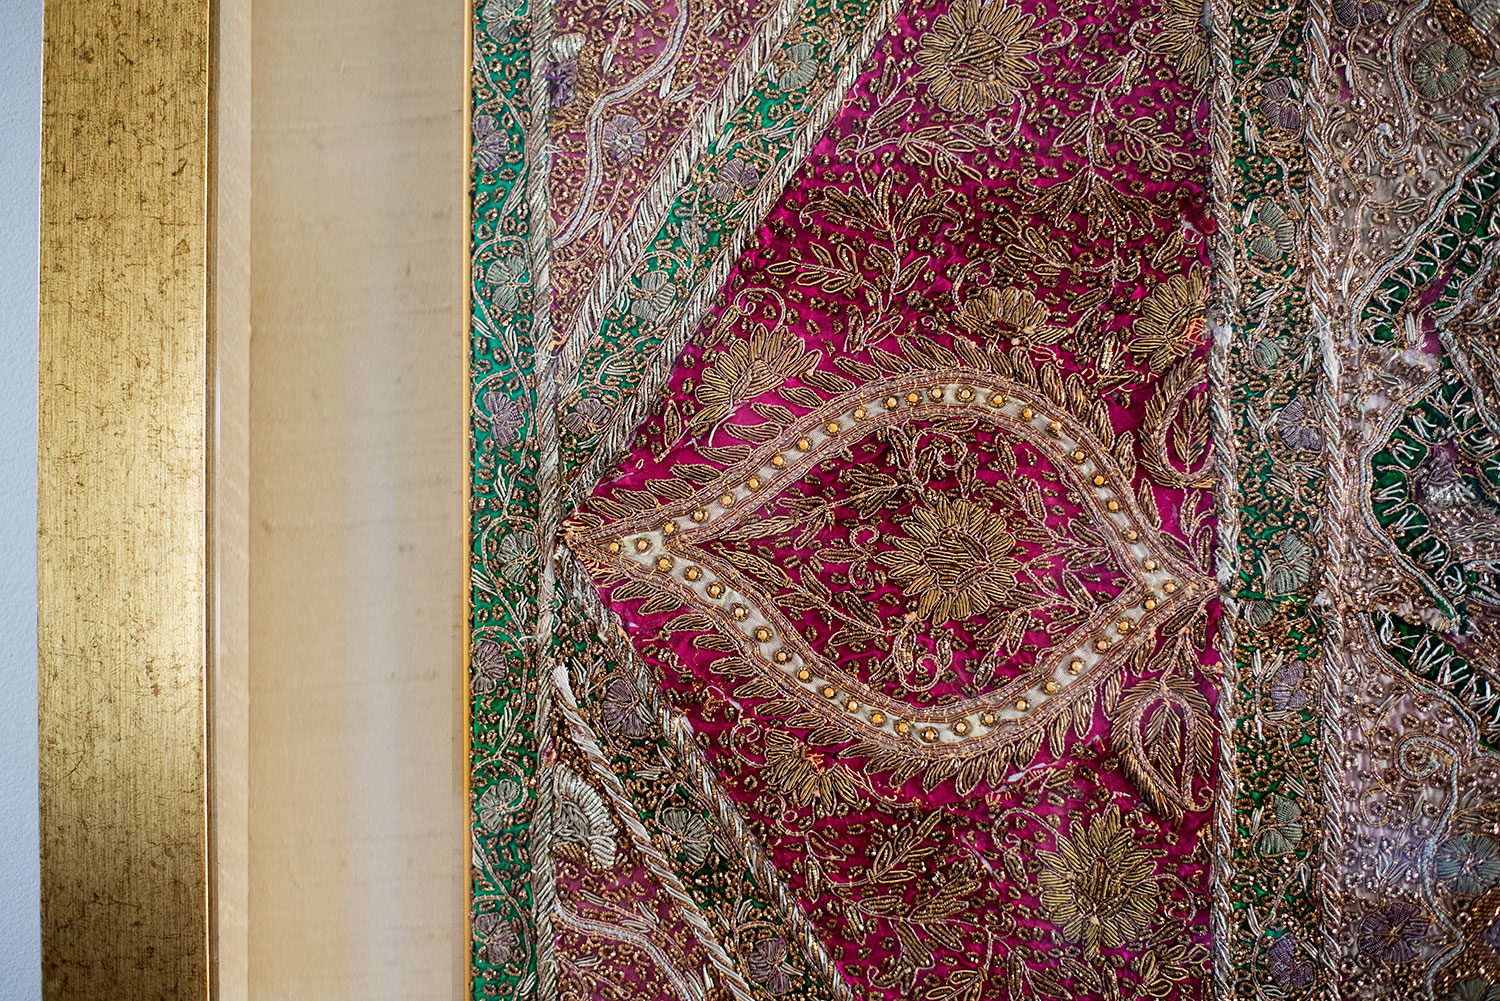 Detail of traditional silk beaded embroidery